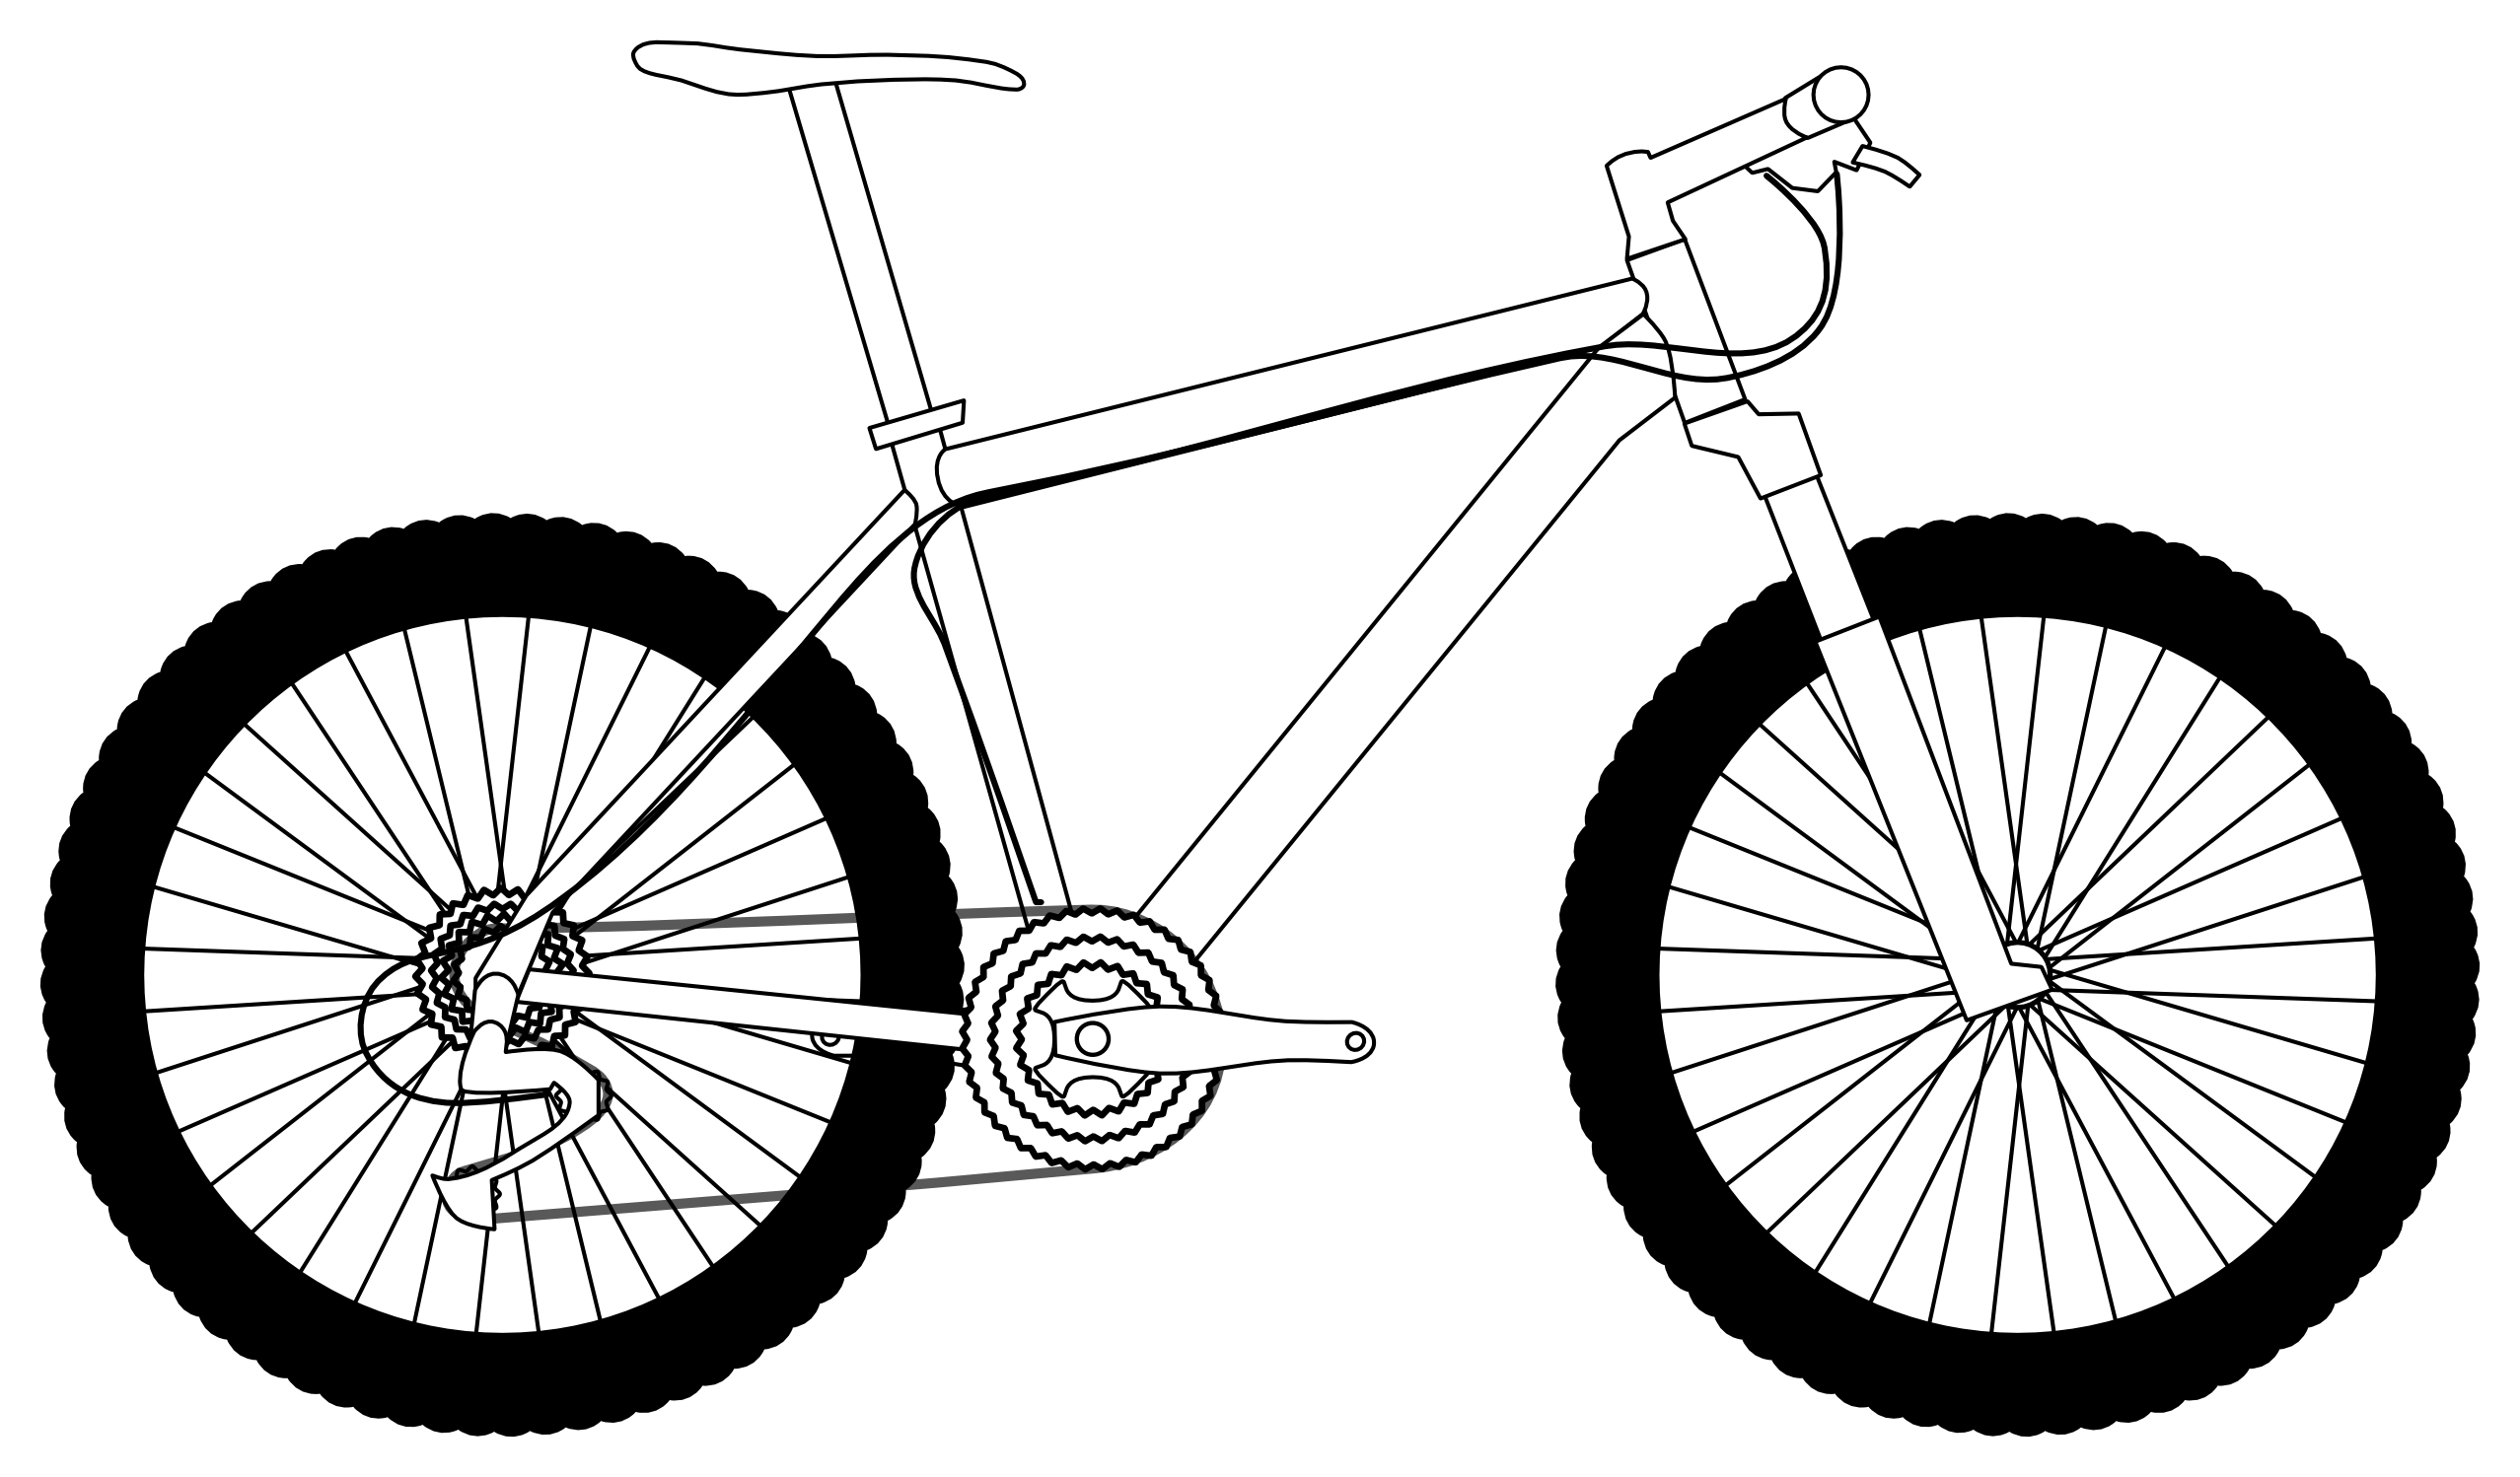 White clipart bike. Outline drawing at getdrawings